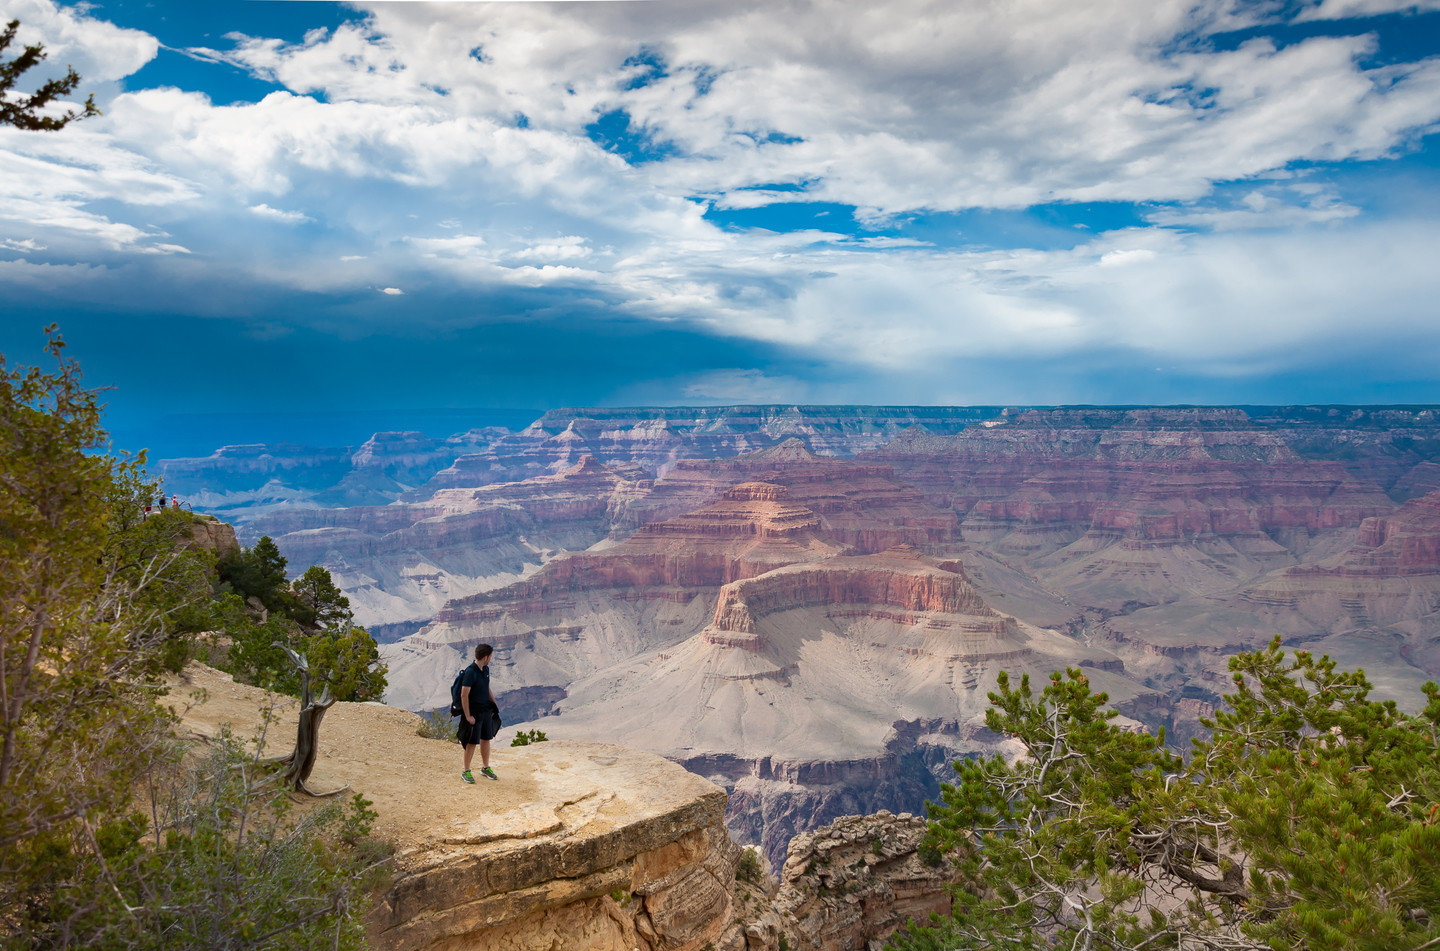 America American Southwest Countryside Historic Landmarks landscape national park Natural wonders Nature Road Trips western outdoor sky valley canyon mountainous landforms geographical feature landform wilderness mountain mountain range cloud badlands plateau park